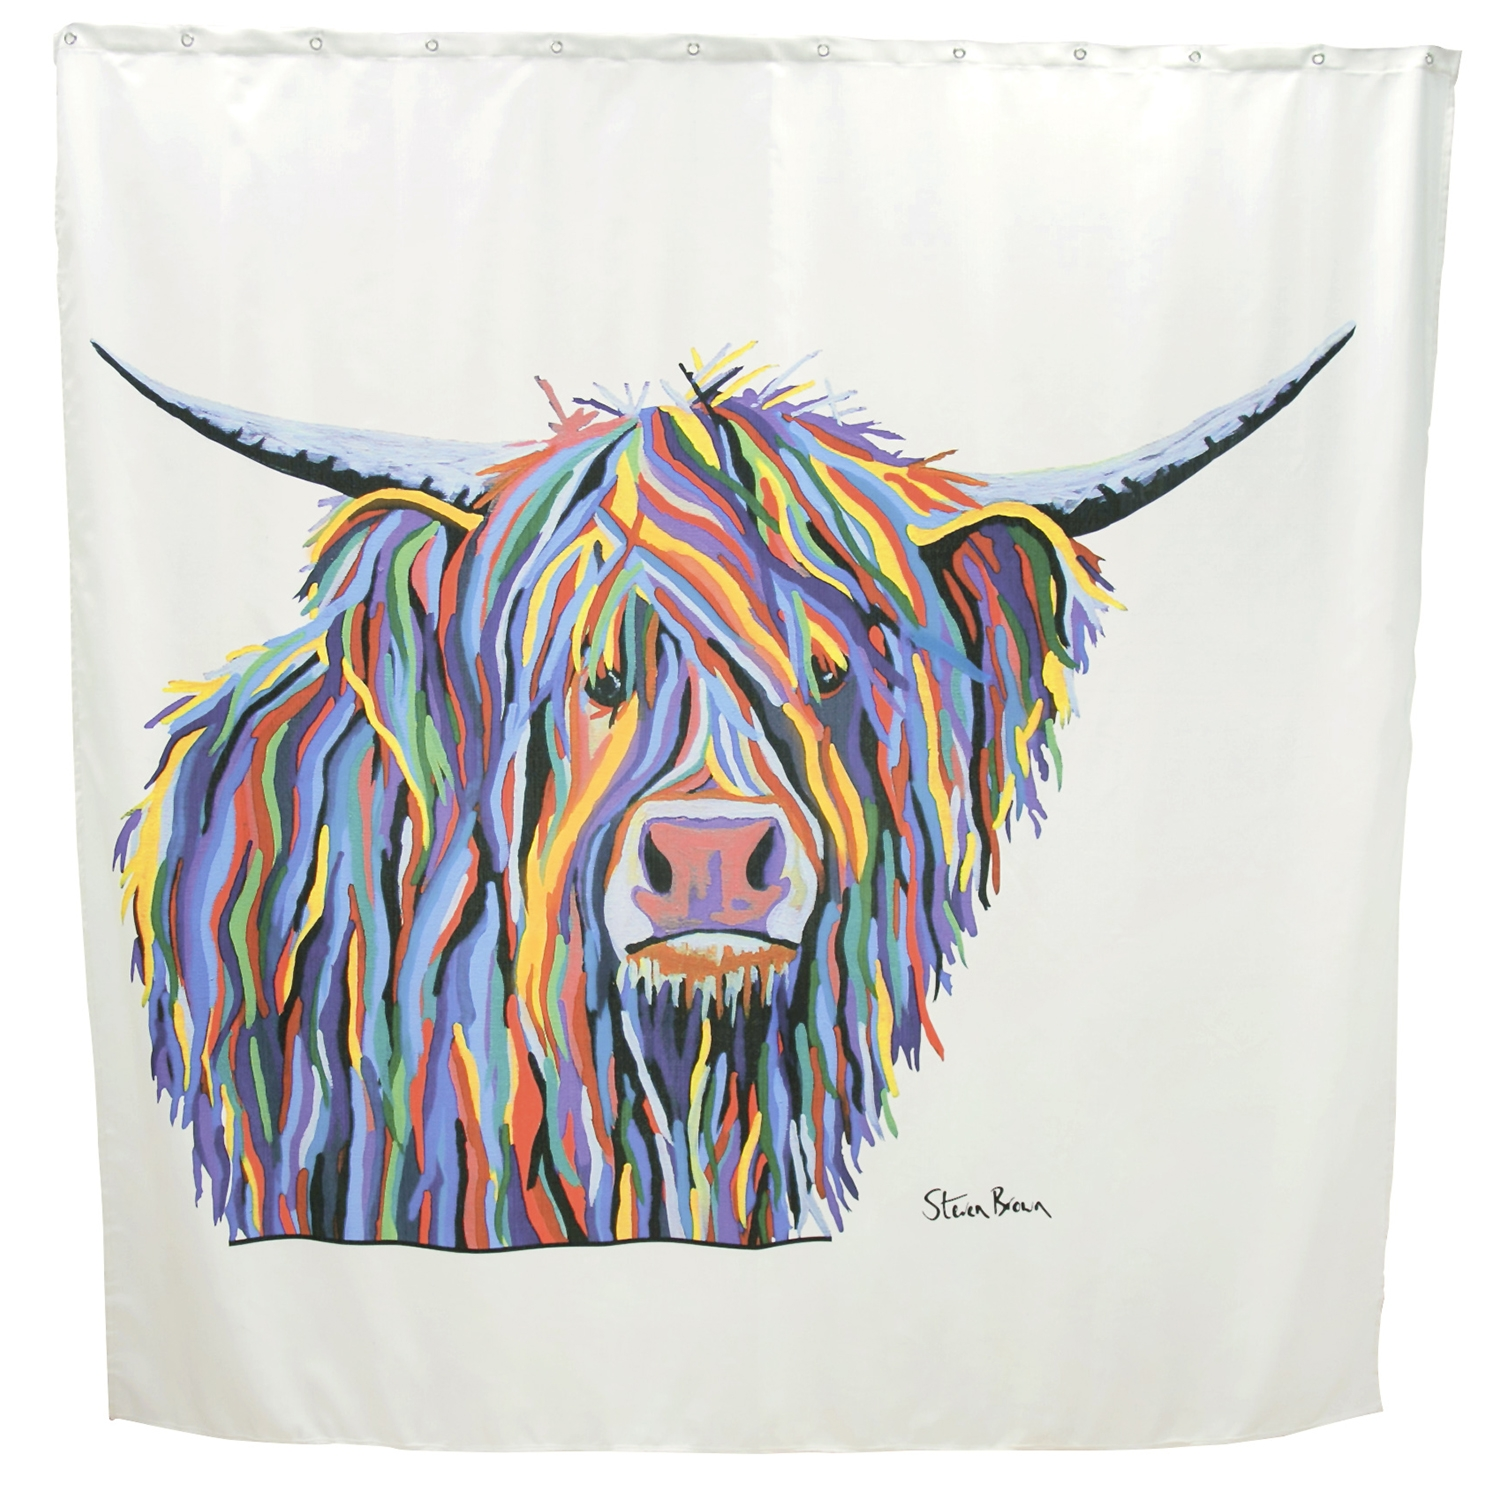 Image of Angus Mccoo Shower curtain